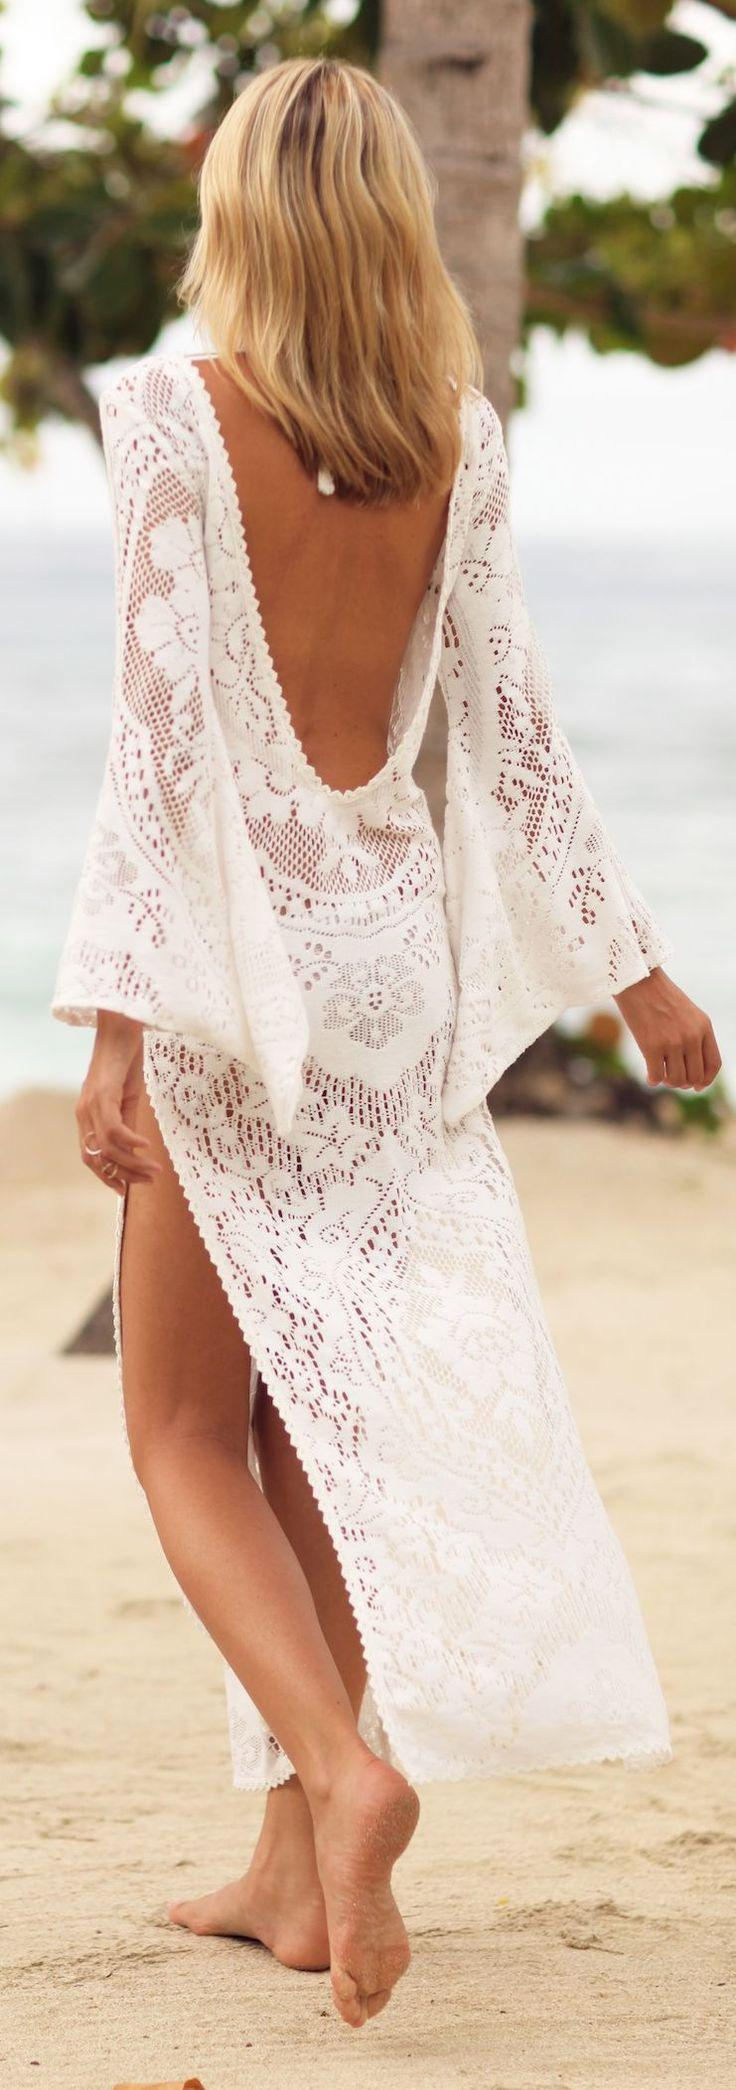 Beach Vacation Outfits : White Crochet Backless Maxi Cover Up– BEAUTIFUL for a beach vacat ...